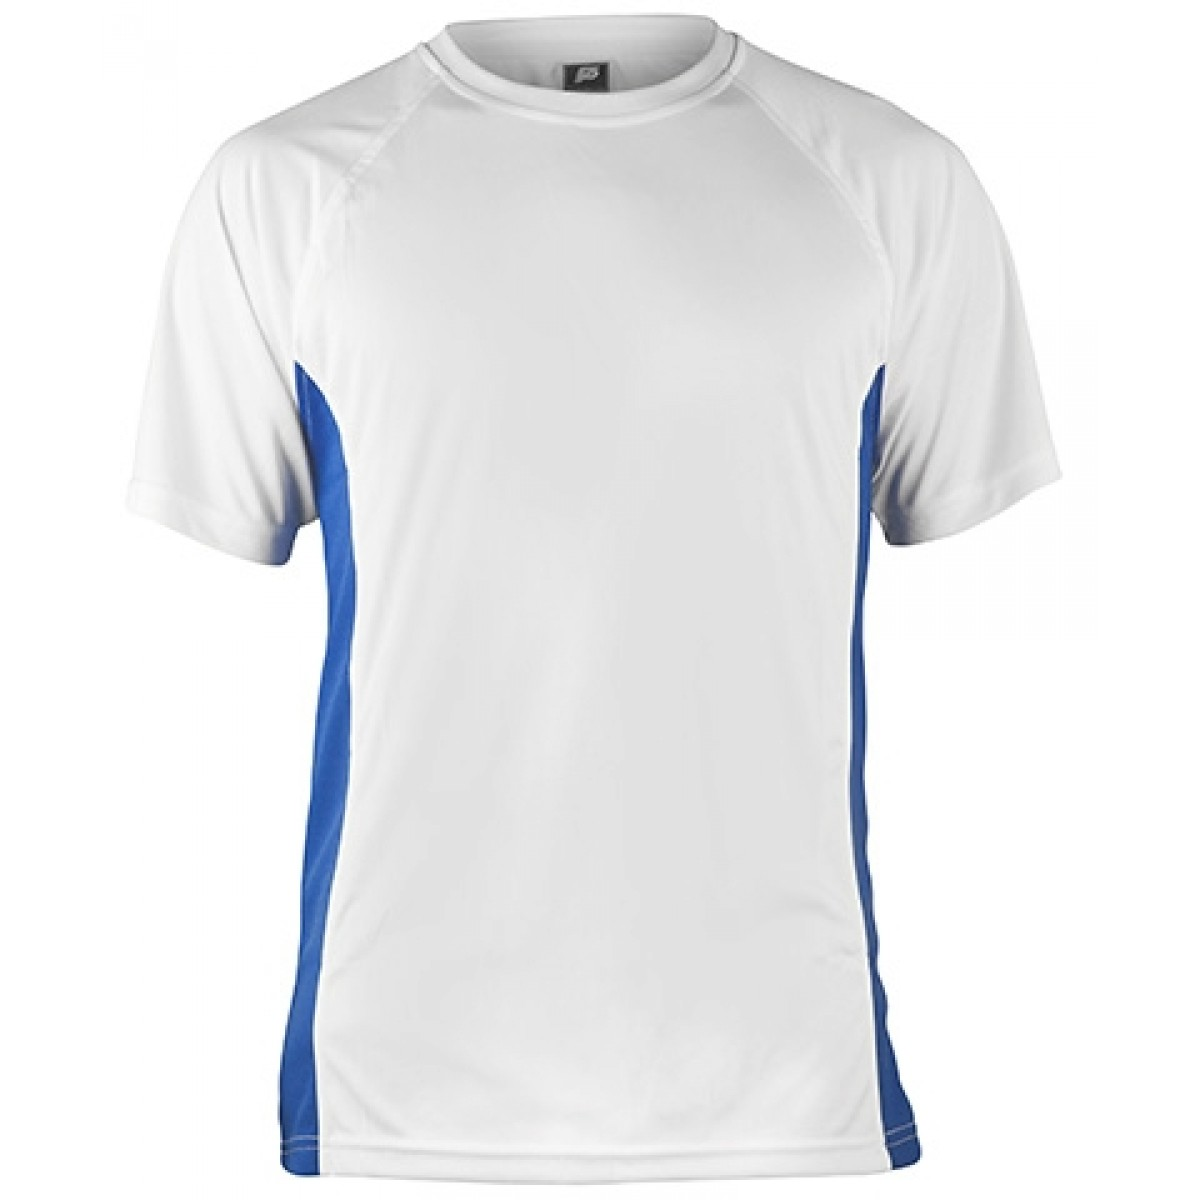 Short Sleeve White Performance With Blue Side Insert-White/Blue-YL